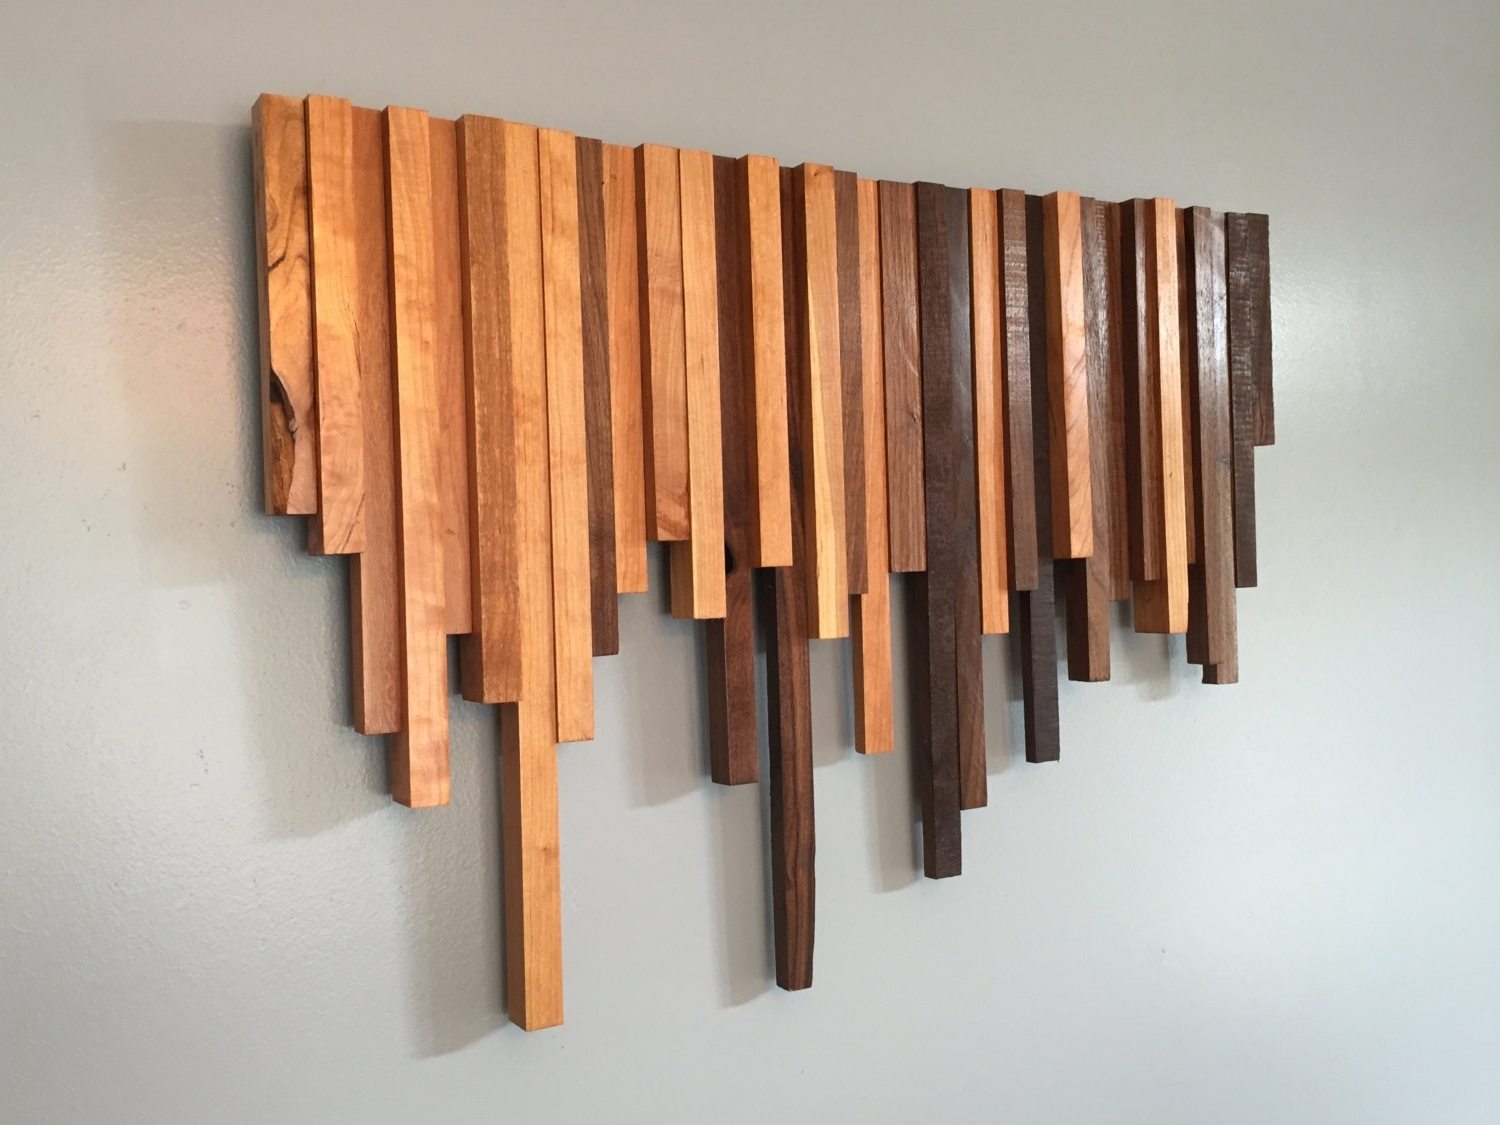 Italian Inlaid Wood Wall Art Regarding Preferred Wood Wall Art Ideas – Sustainablepals (View 4 of 15)